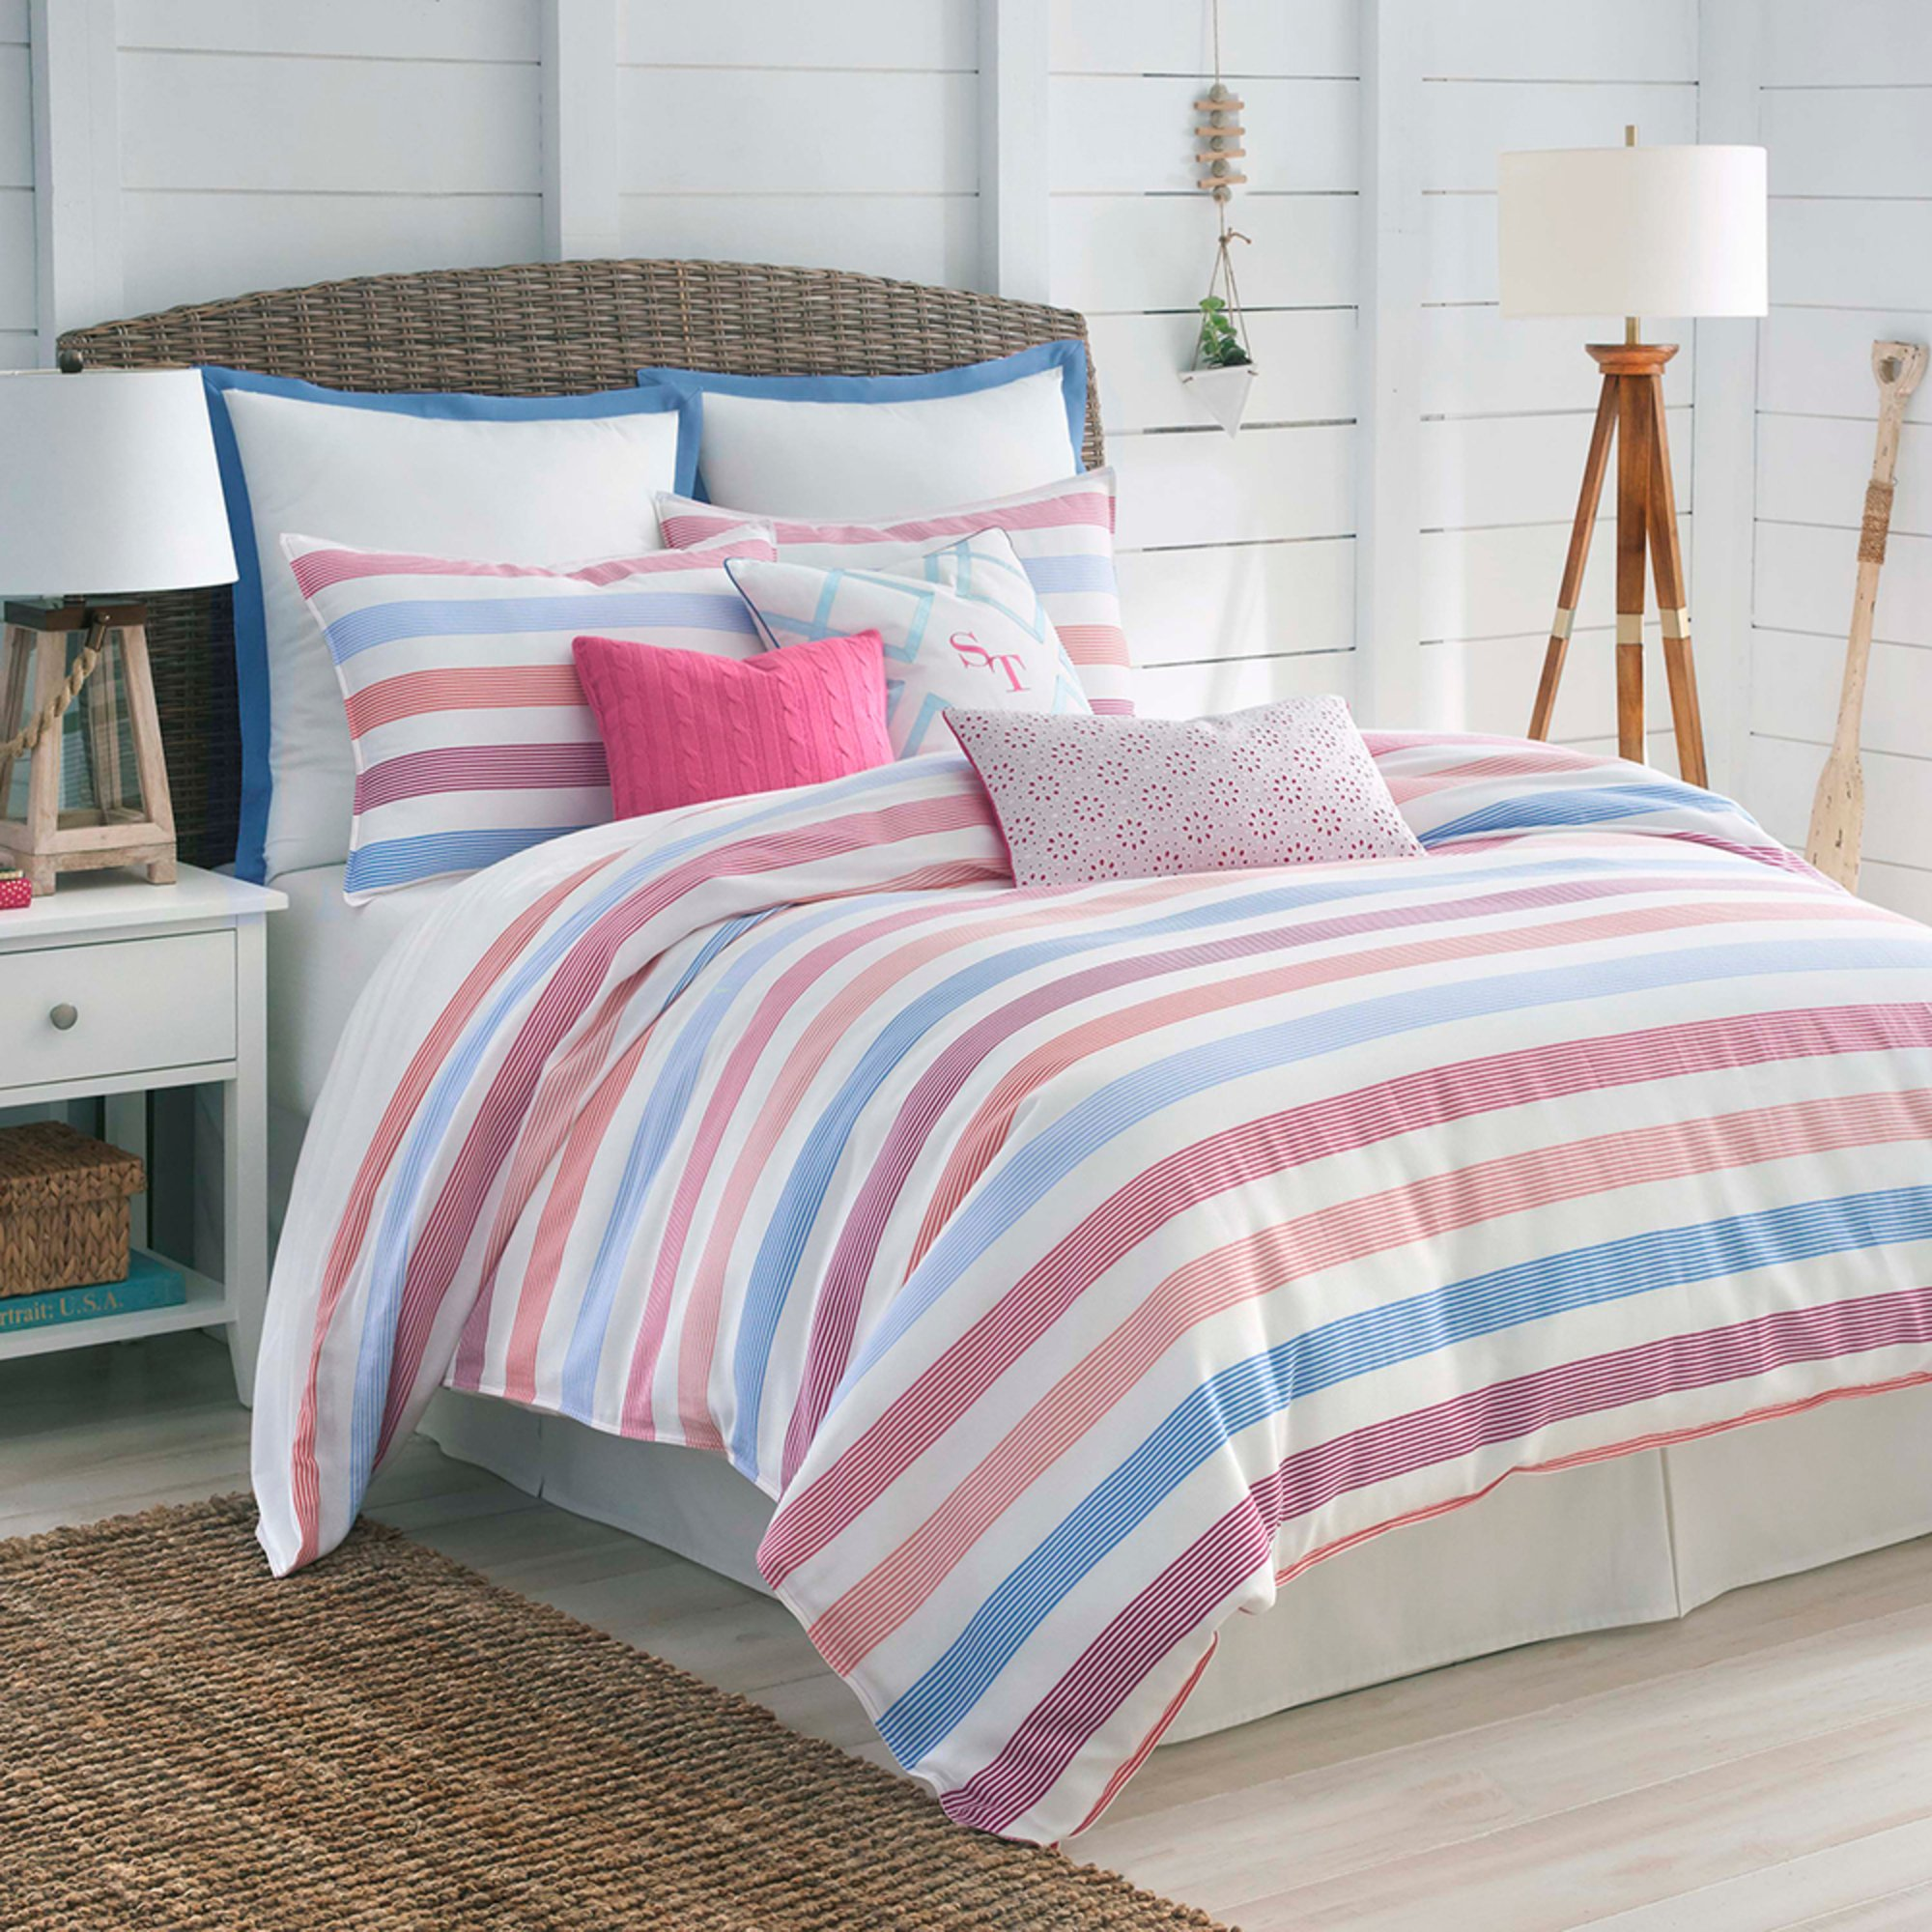 Southern tide long bay 4 piece comforter set full for Southern tide bedding